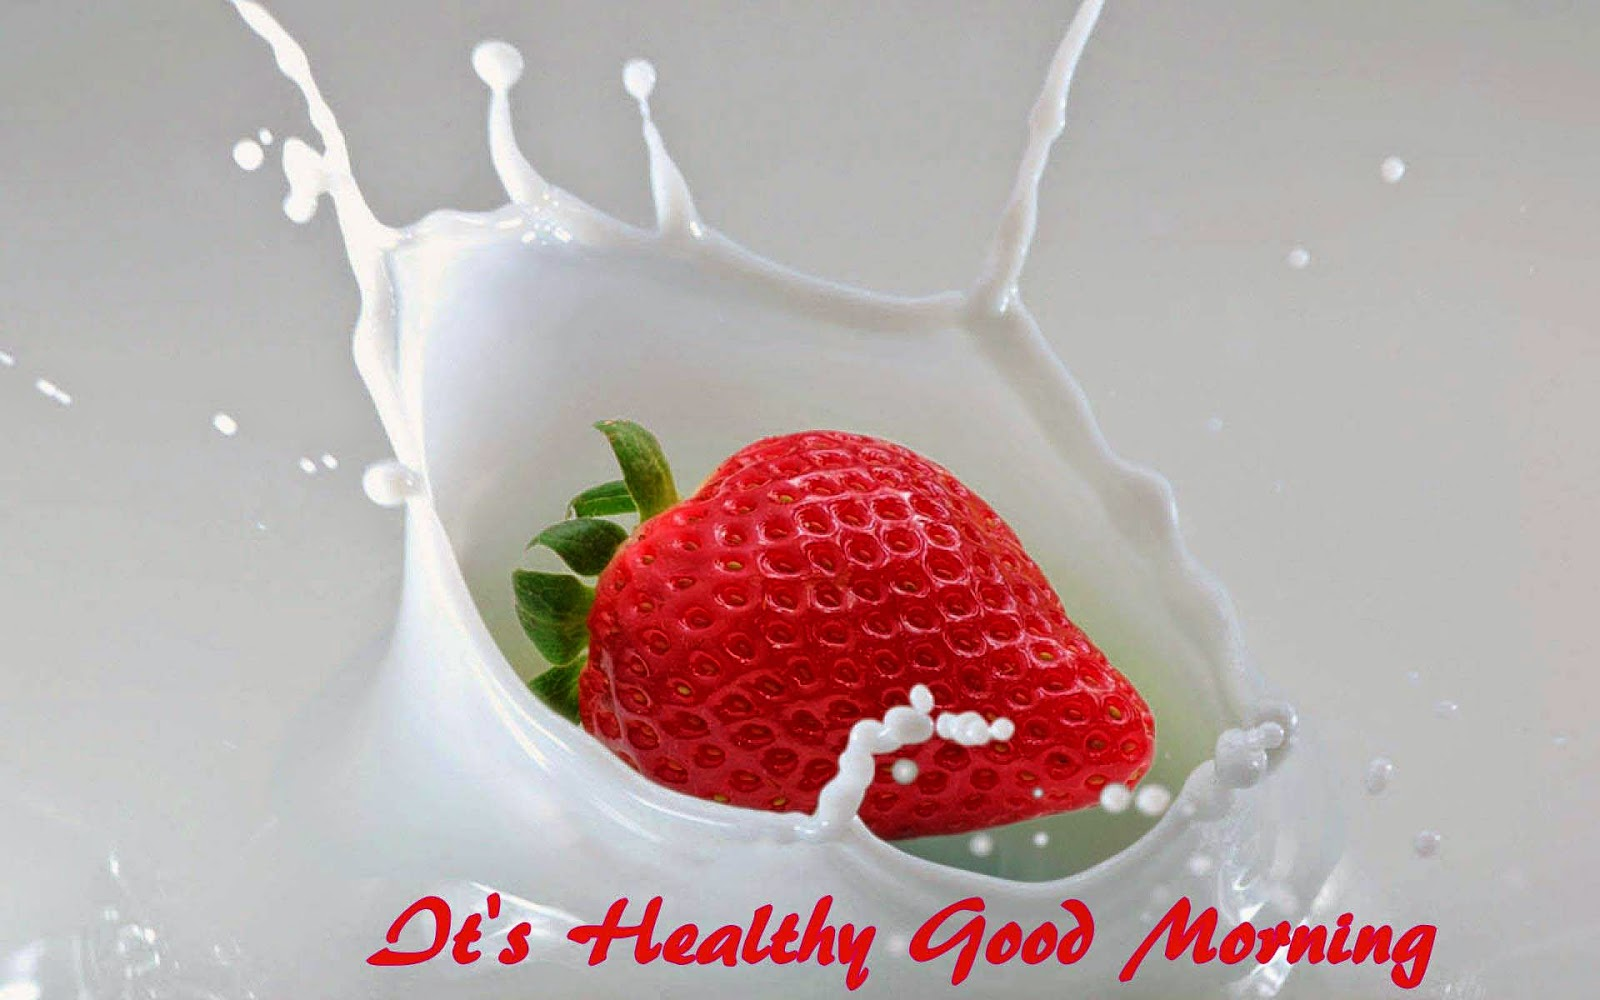 Strawberry-Healthy-Good-Morning-image